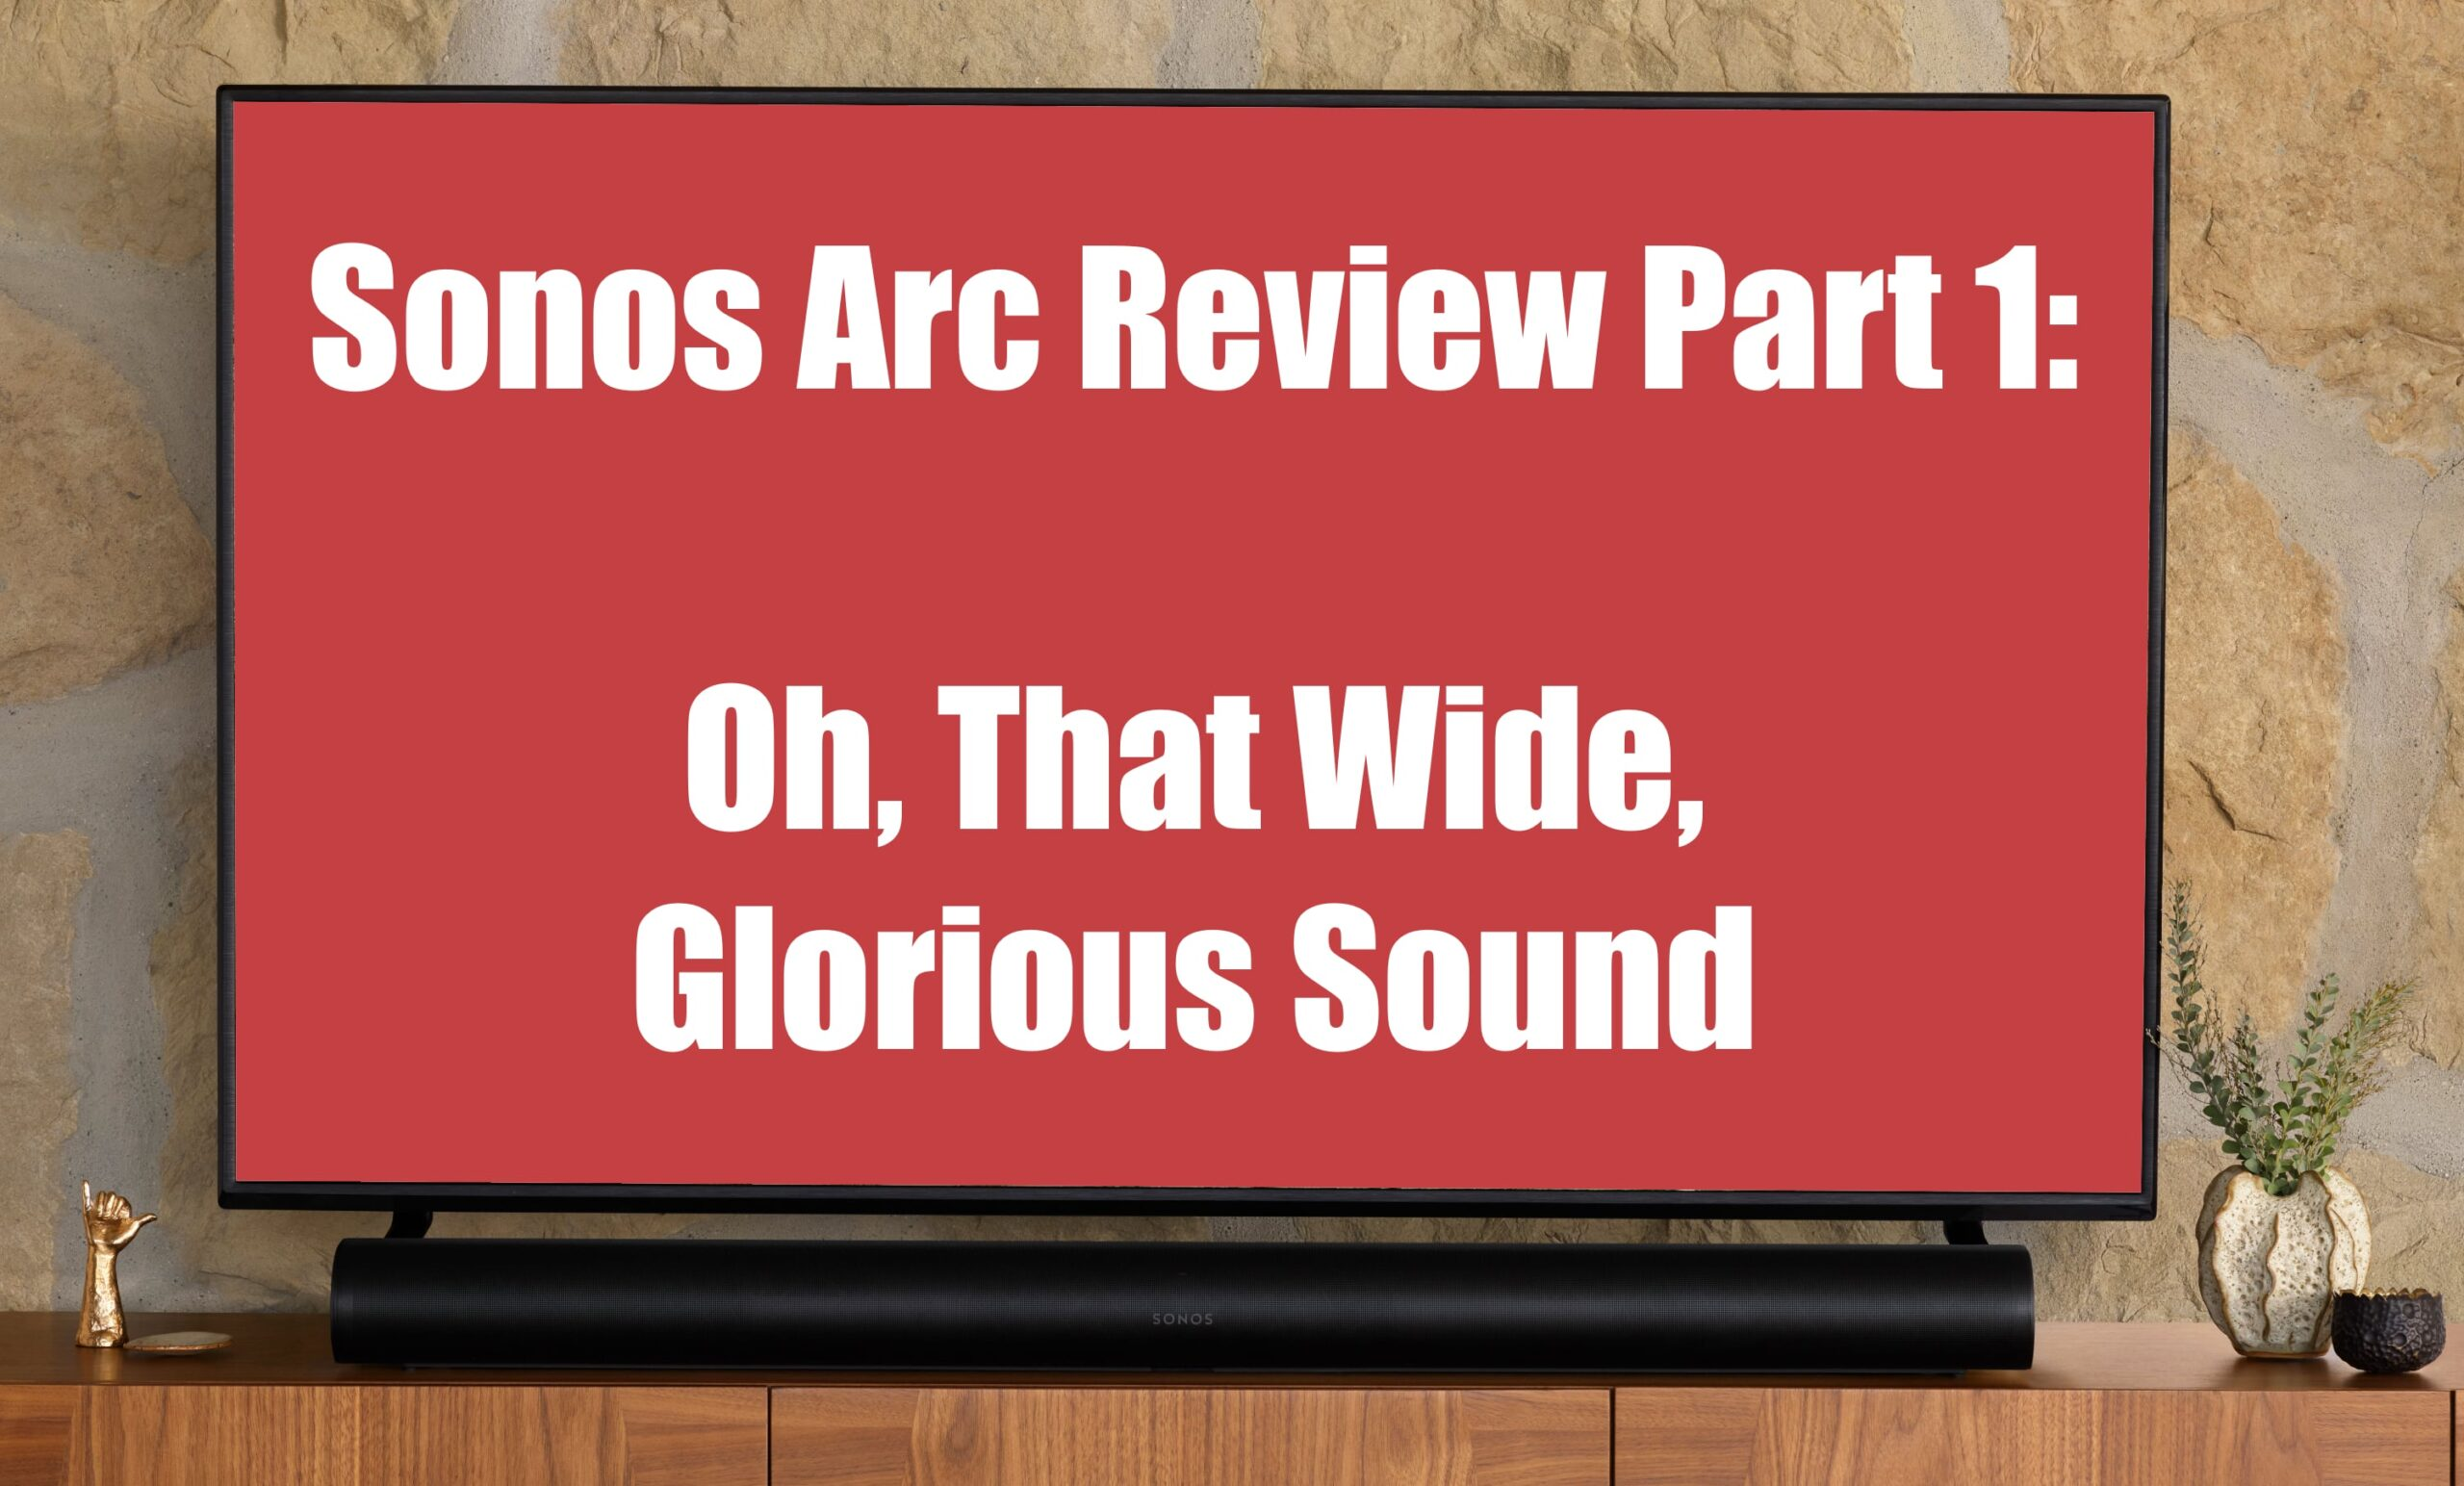 Sonos Arc below TV with Text: Sonos Arc Review Part 1 Oh That Wide Glorious Sound